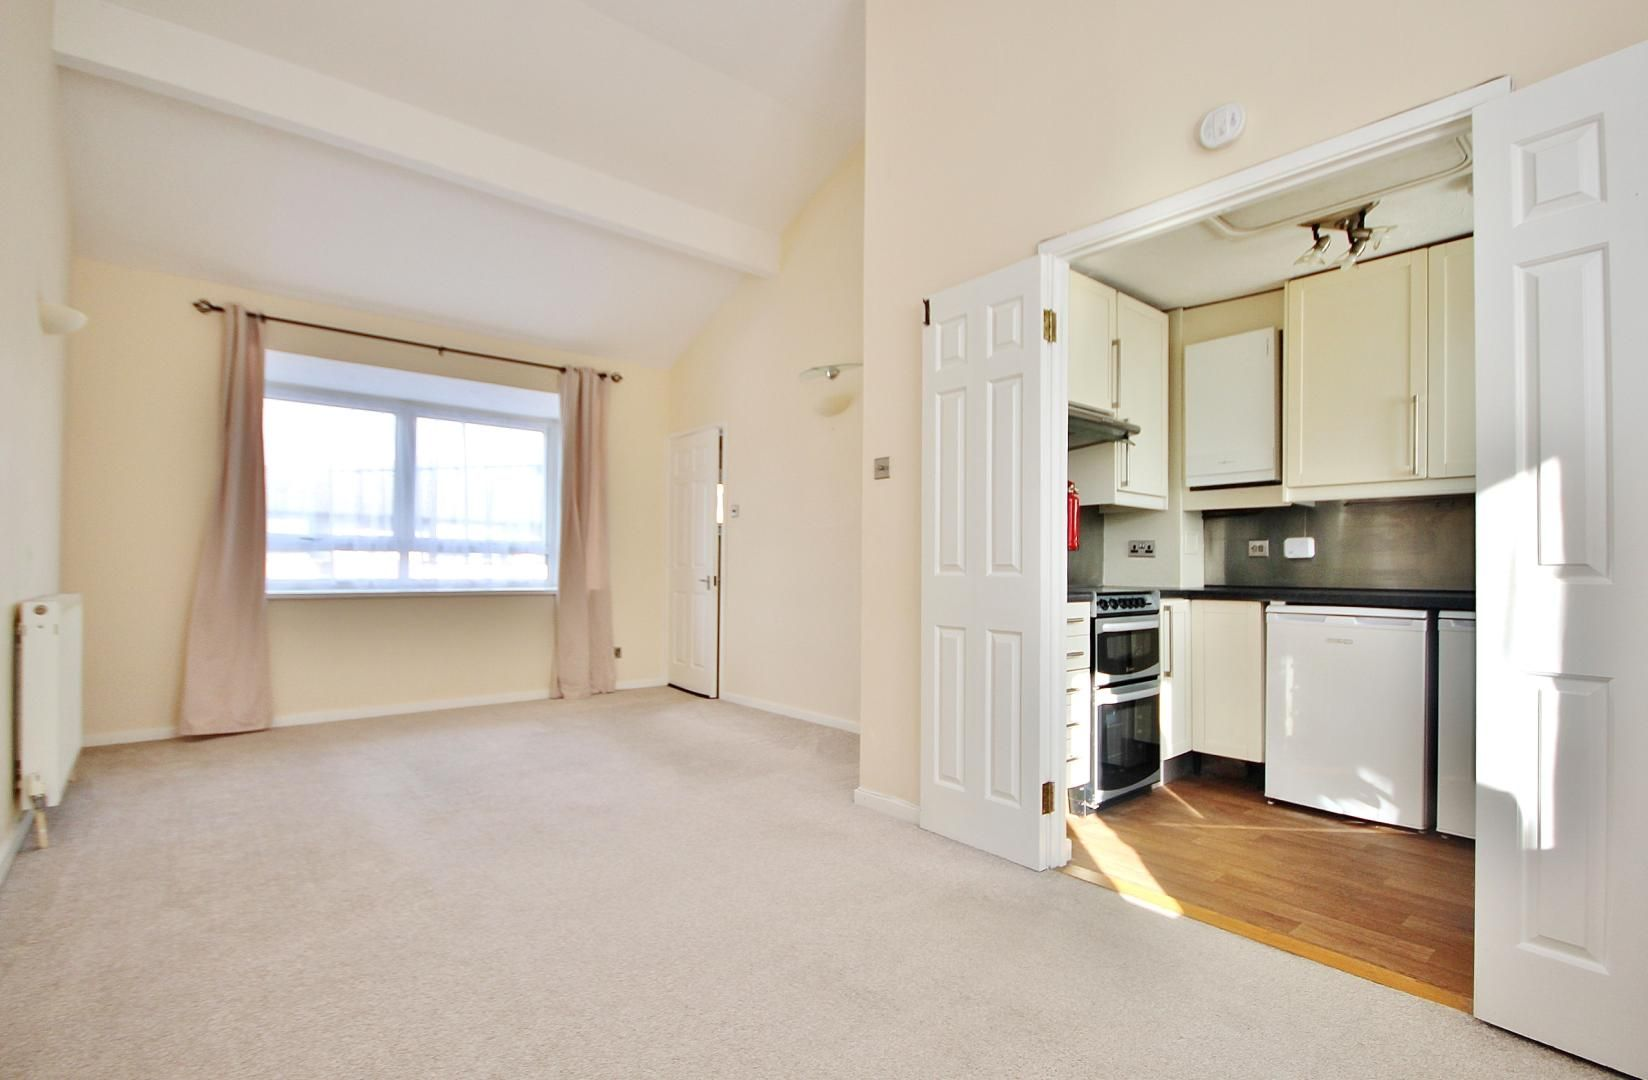 4 bed house to rent in Barnfield Place, E14